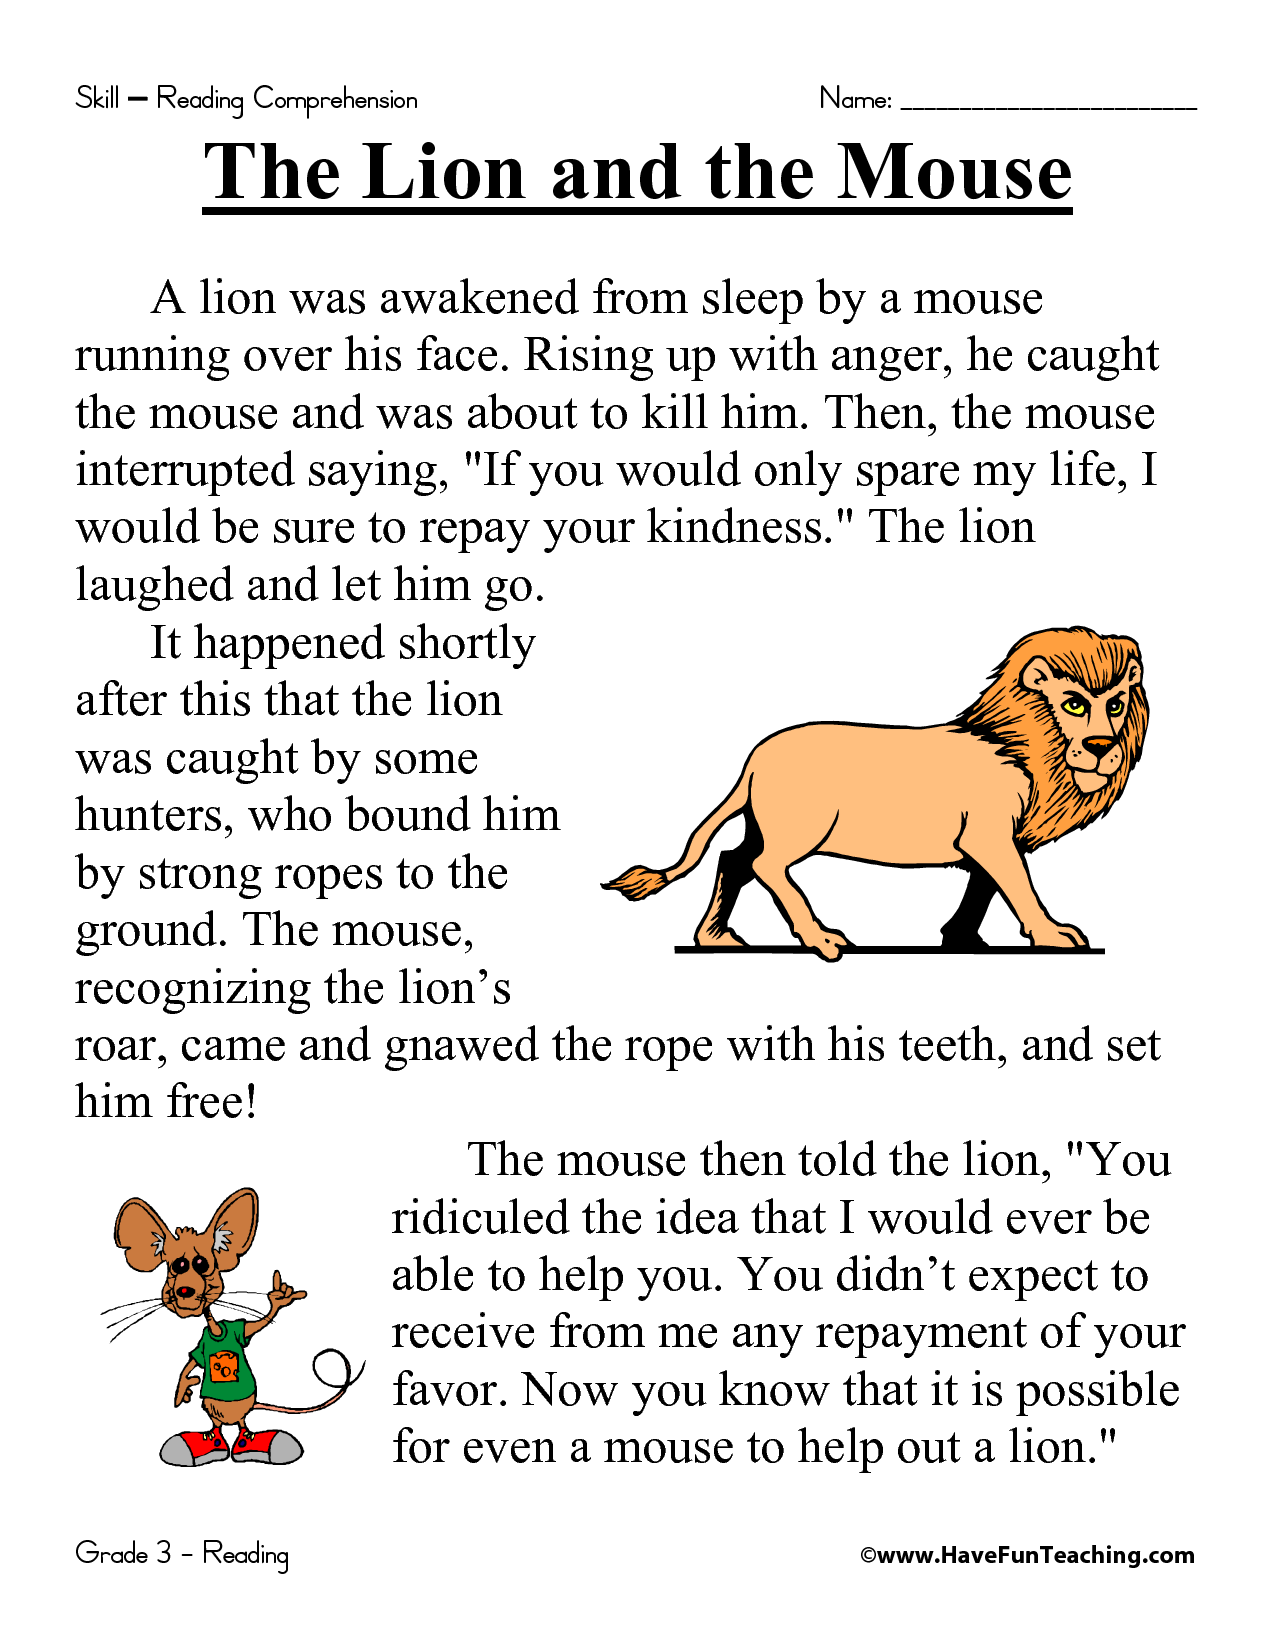 Worksheet Stories For 3rd Graders reading comprehension stories elementary education pinterest first grade worksheets the lion and mouse worksheet